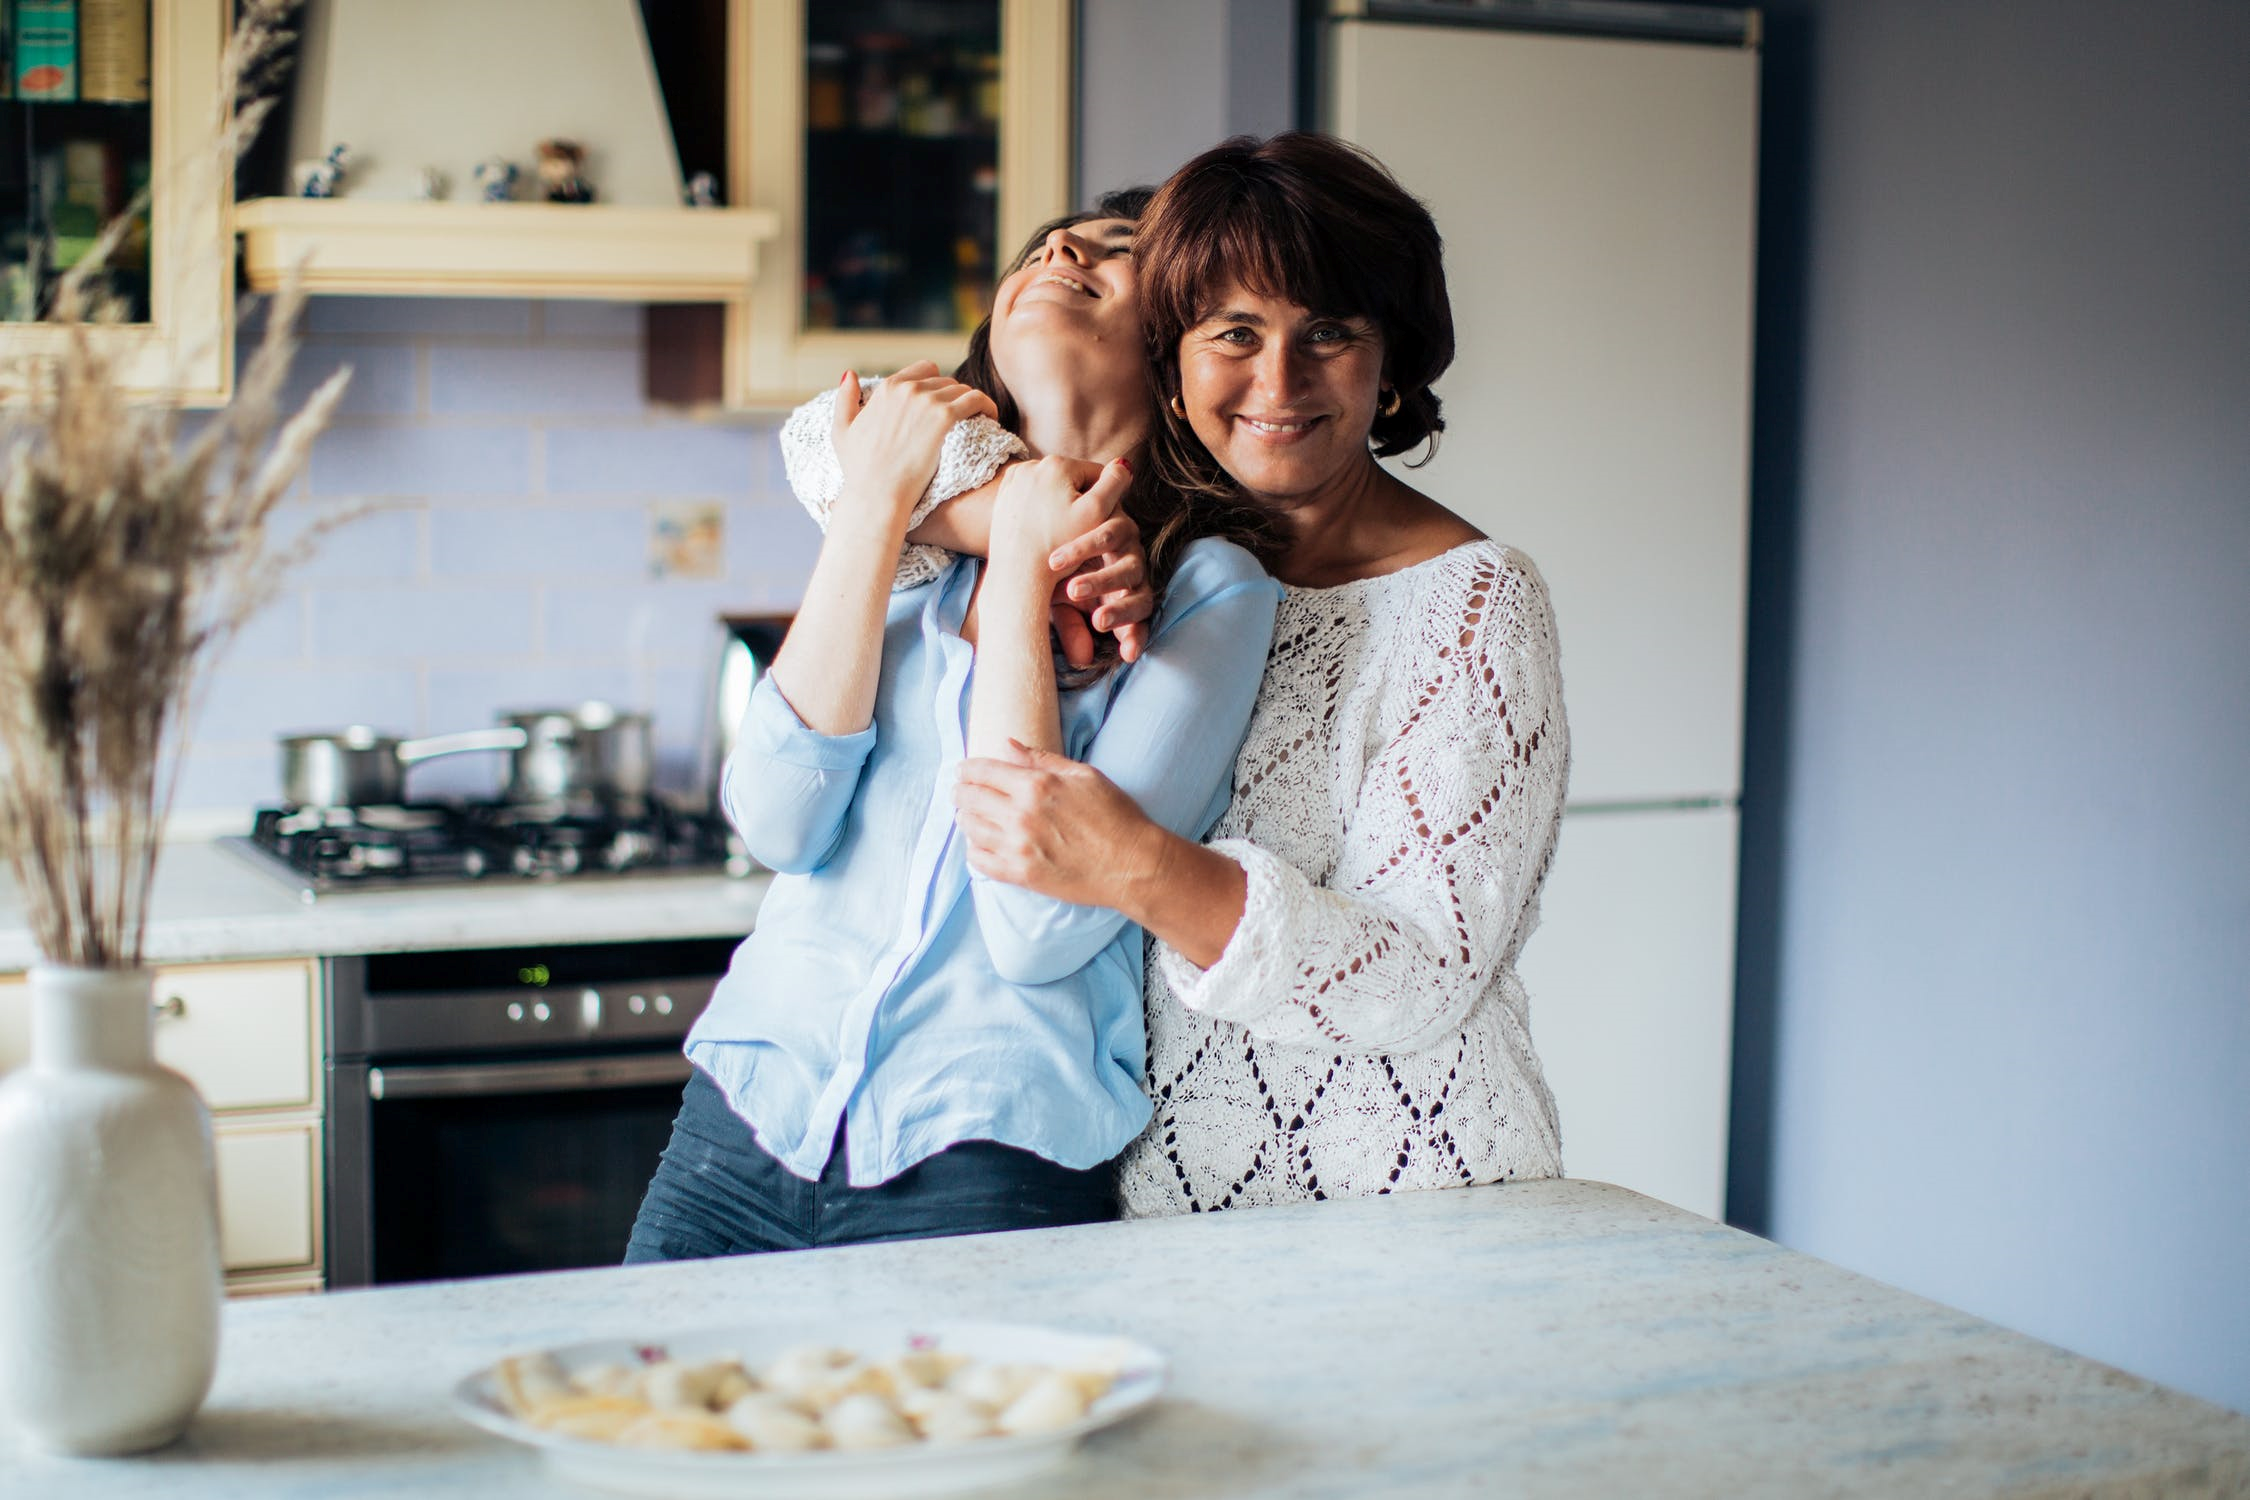 A woman hugging her daughter in a kitchen